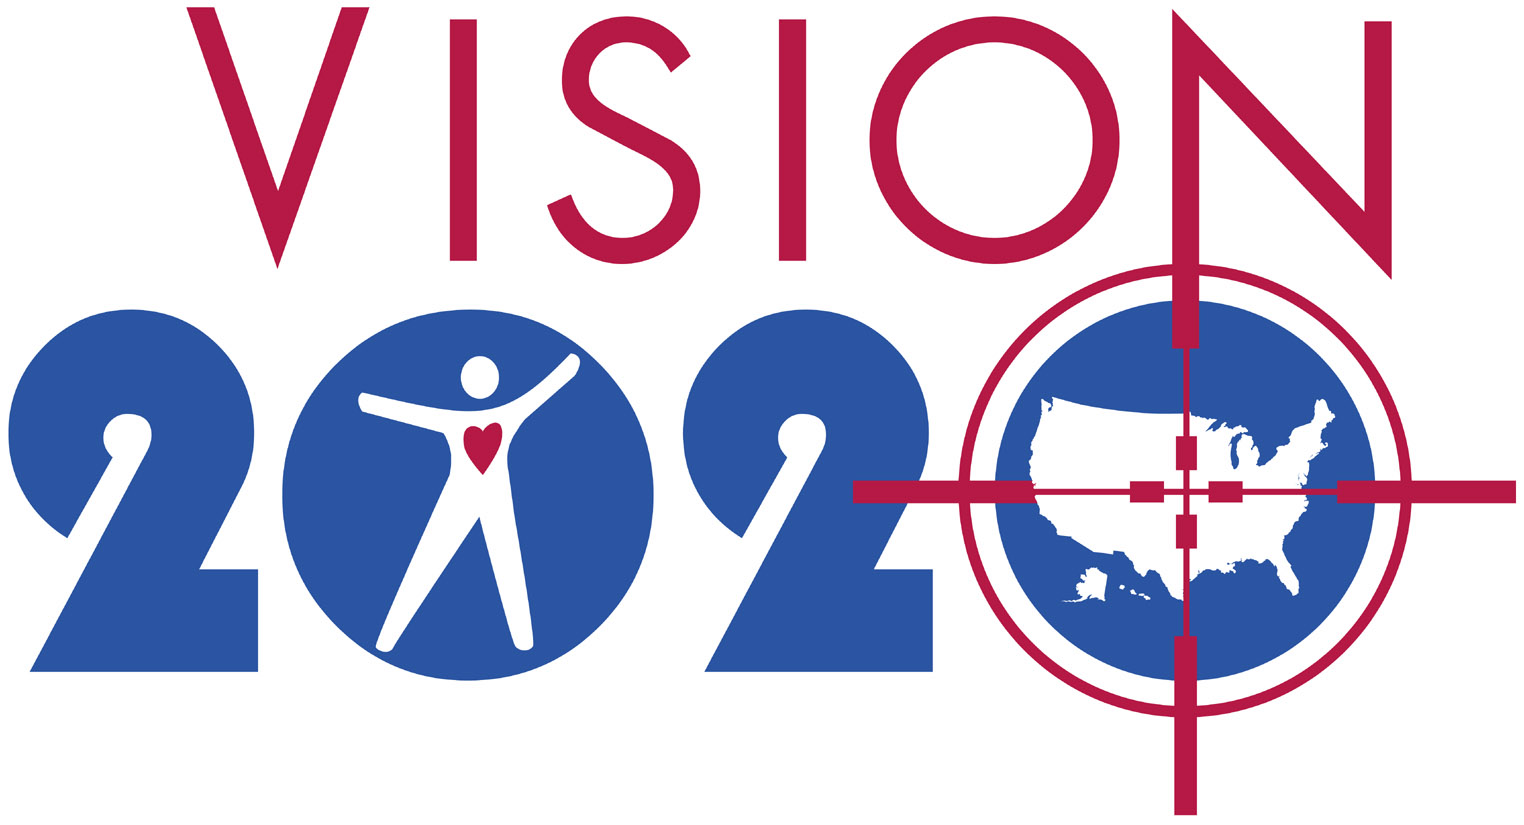 418 words essay on vision 2020